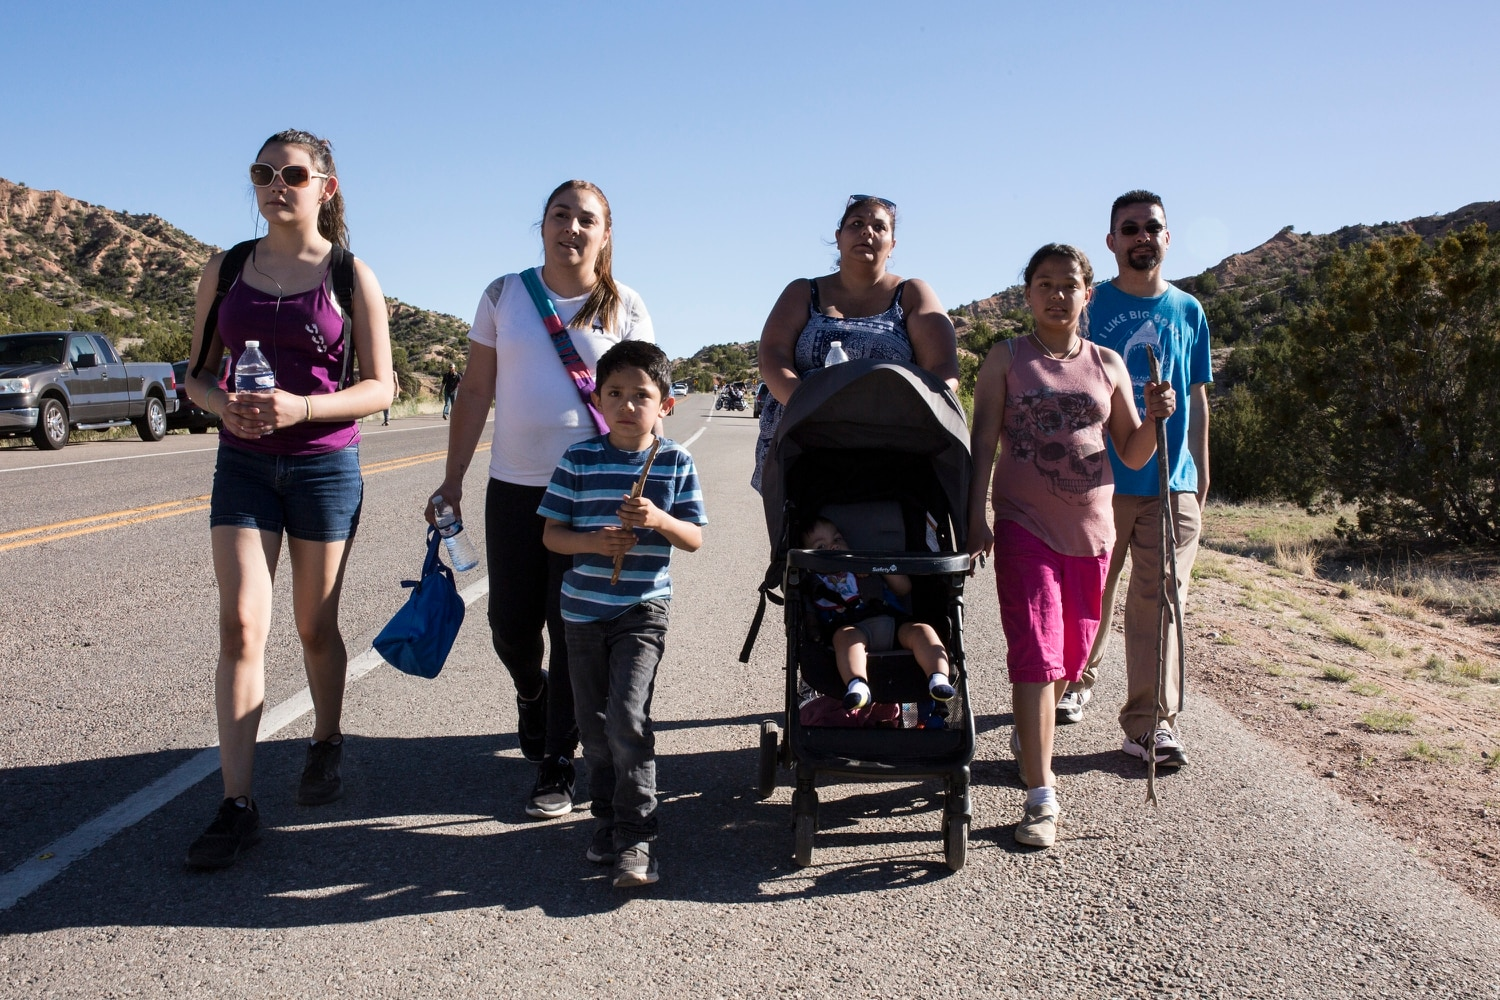 Angela Valdez, second from left, walks with family members in the memory of her stepson, Leland Valdez, who died at 3 years old as a victim of child abuse. Photo by Dillon Sachs